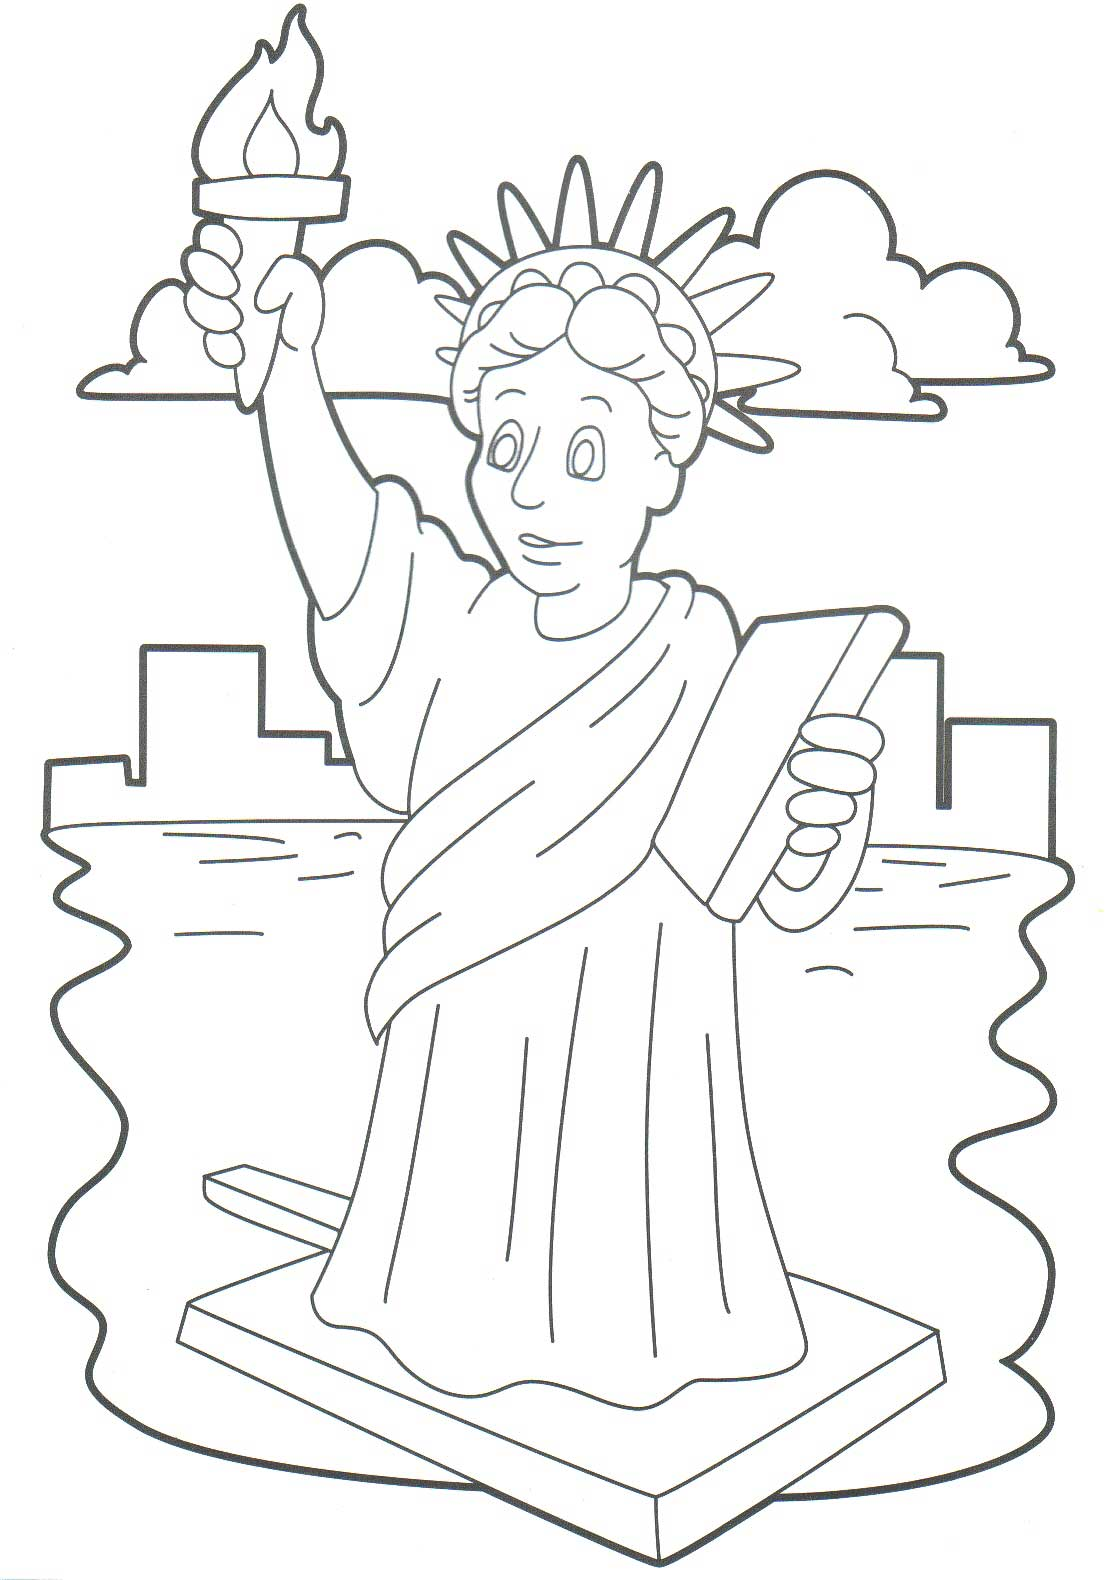 Intrepid image for statue of liberty printable